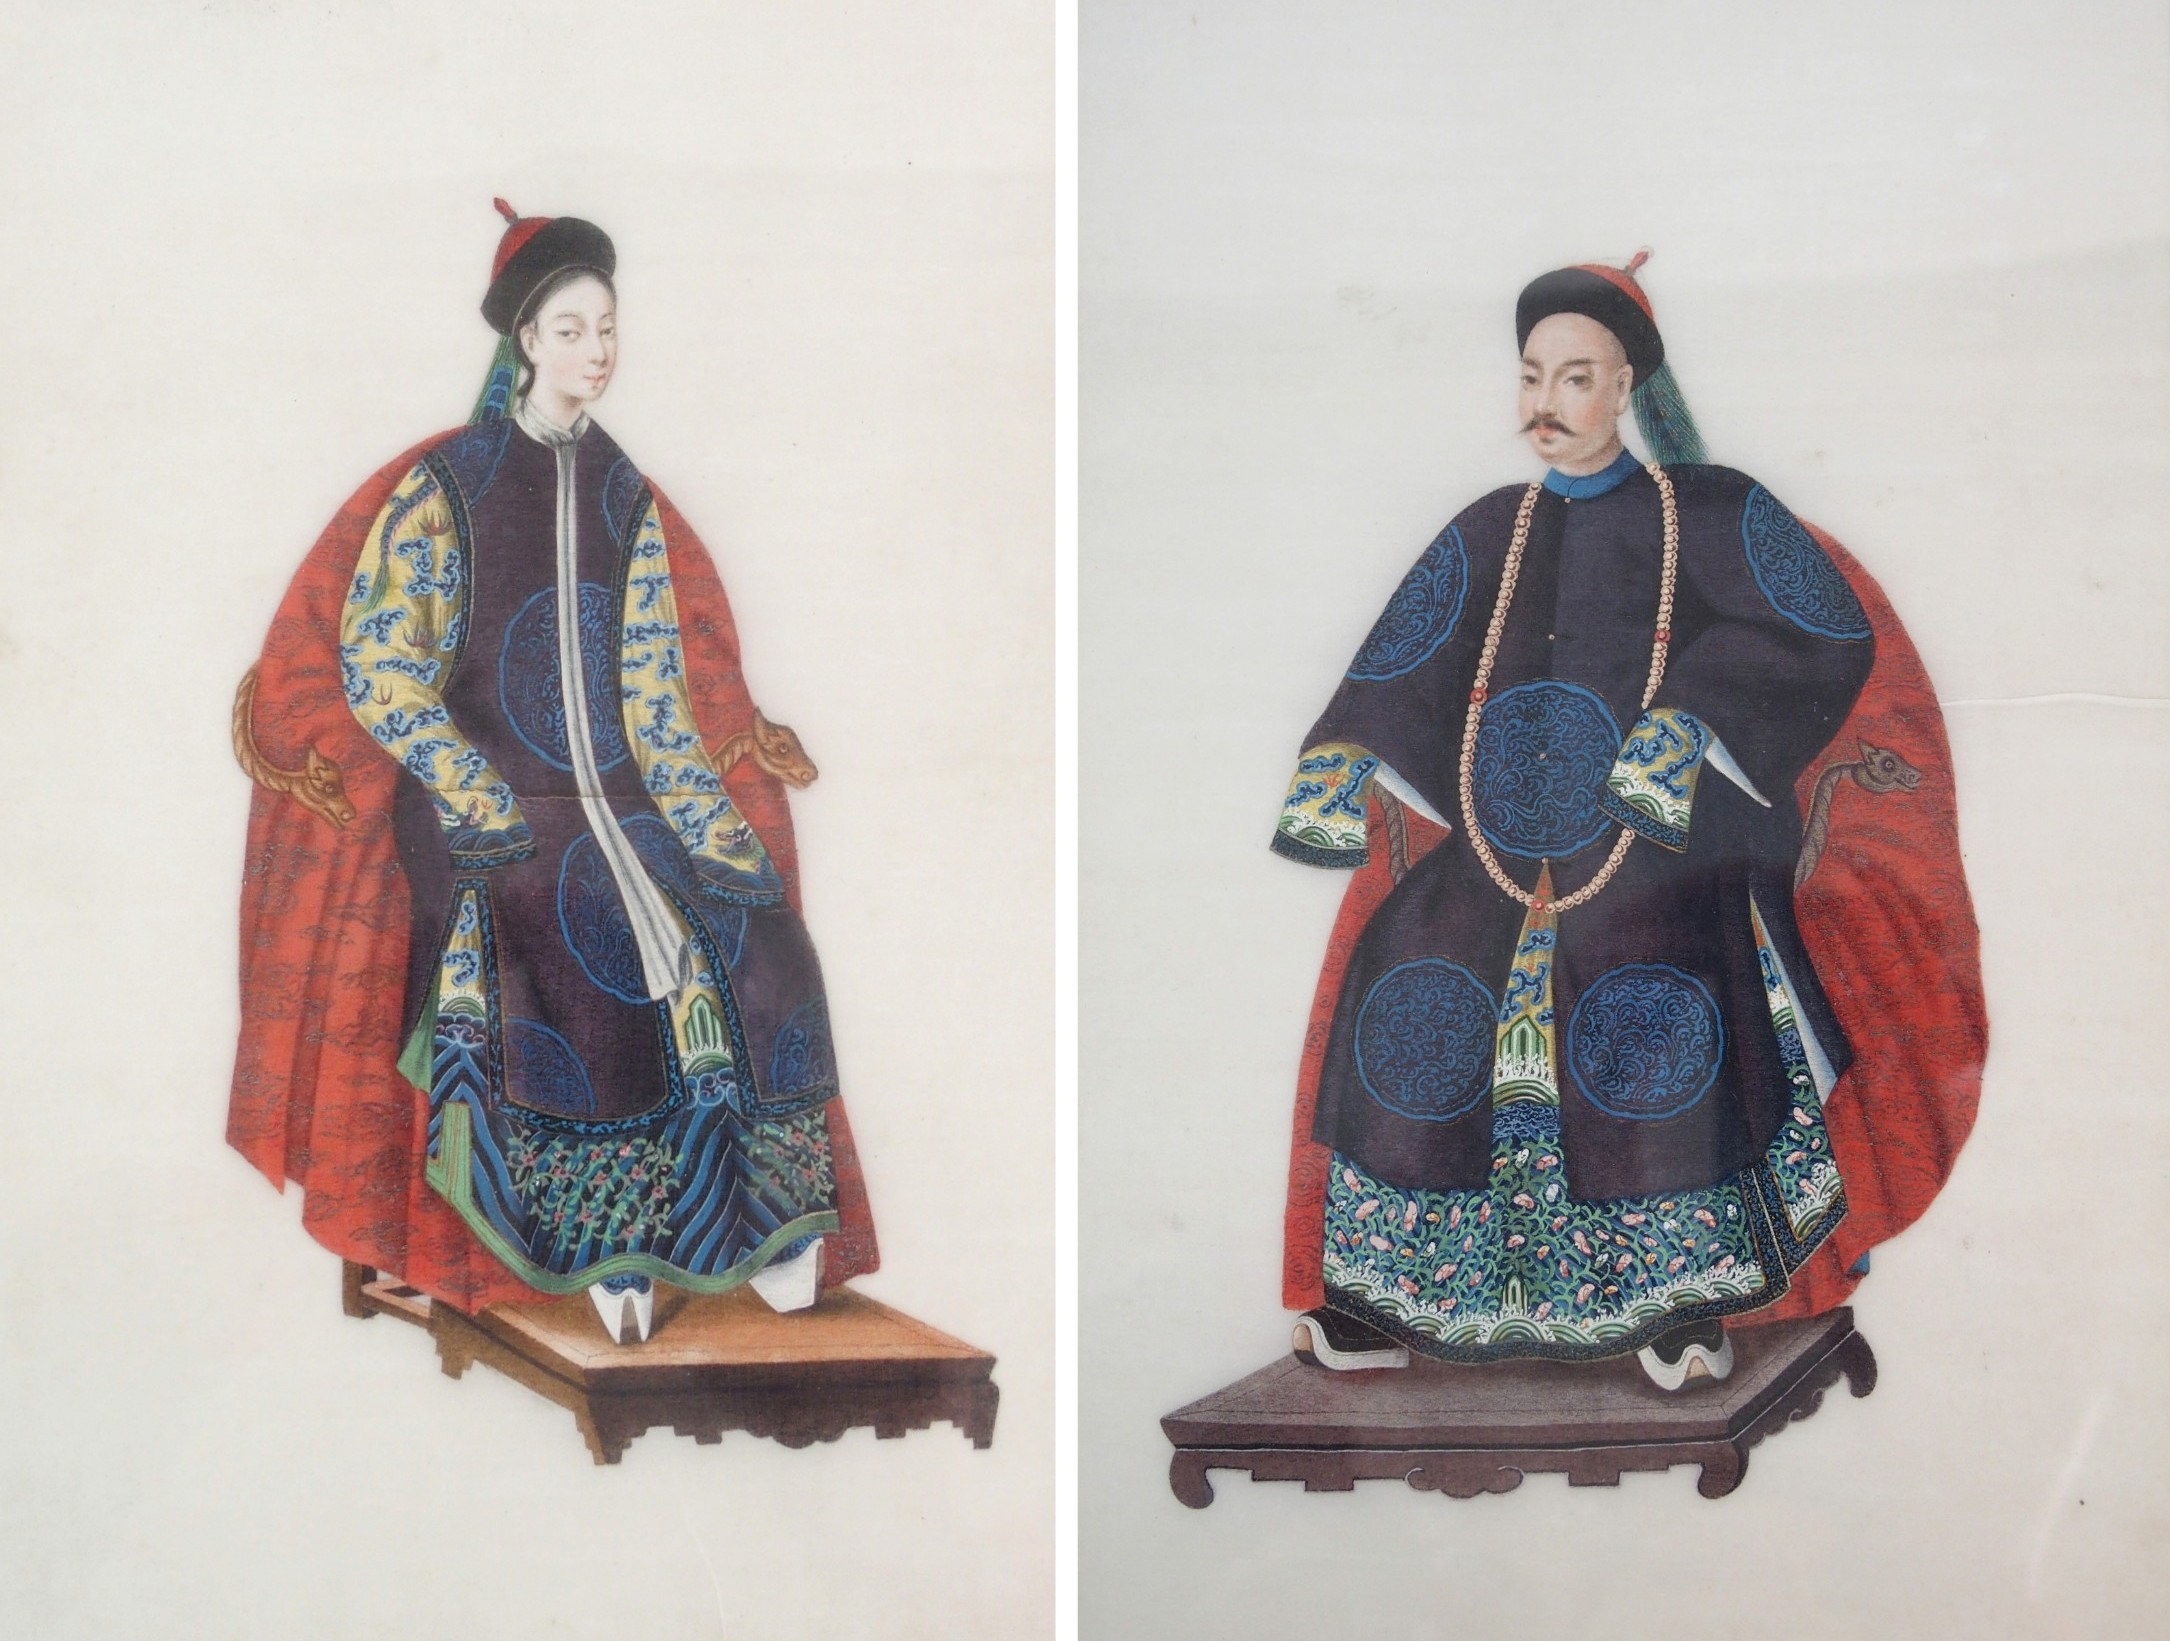 Lot 43 - A PAIR OF CHINESE ANCESTOR PORTRAITS OF A MANDARIN AND CONSORT each seated on a throne and wearing